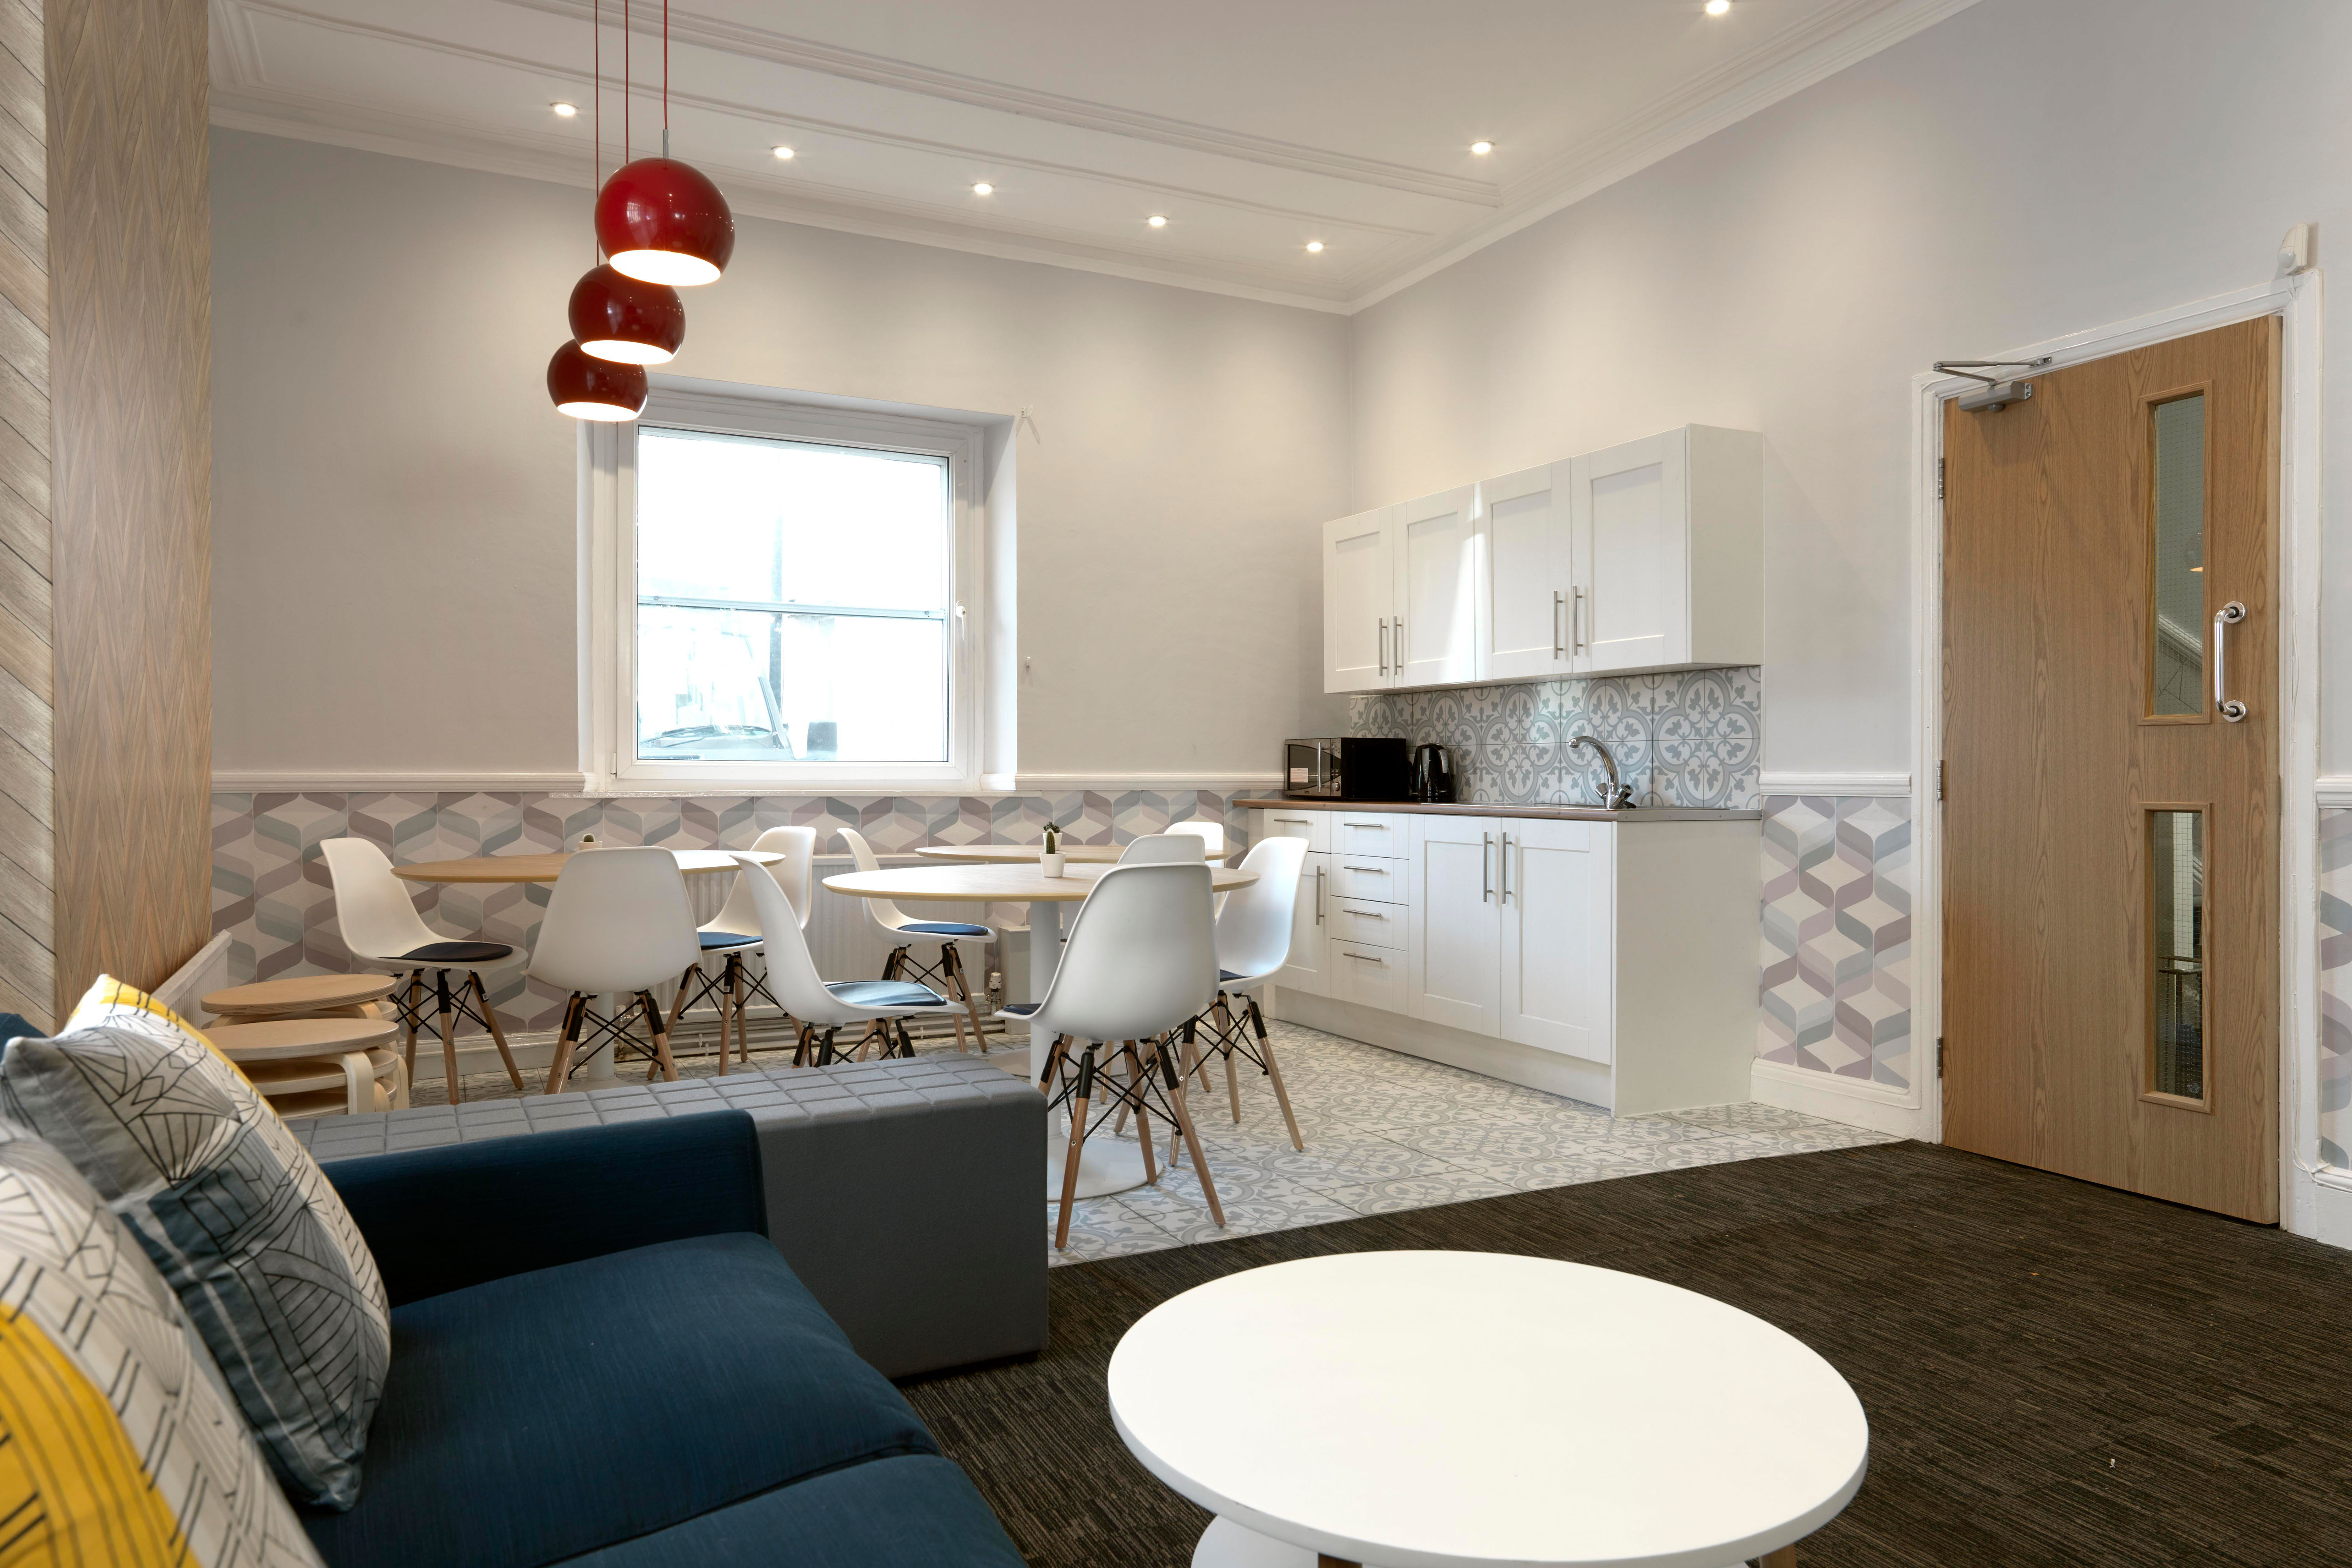 Celtic English Academy Kitchen Interior